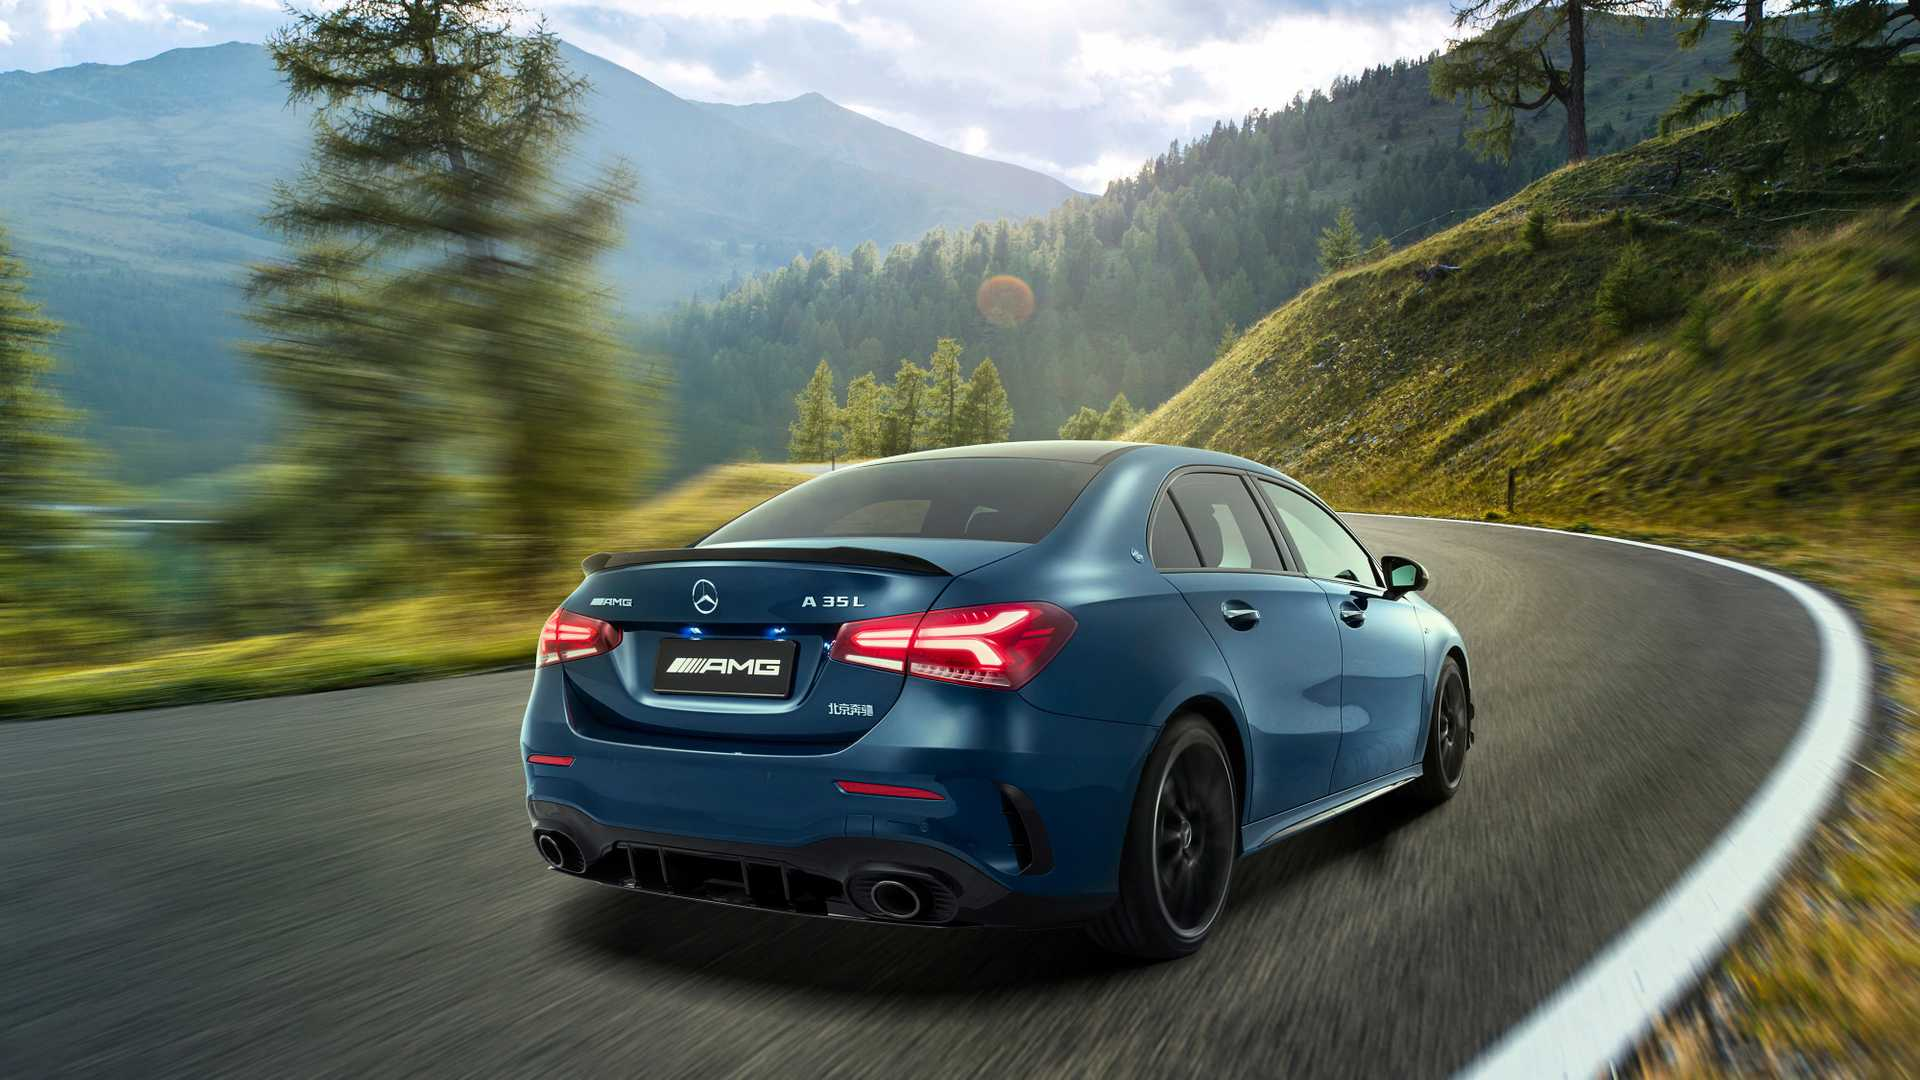 2020 Mercedes-AMG A35 L Sedan 4MATIC Rear Three-Quarter Wallpaper (3)